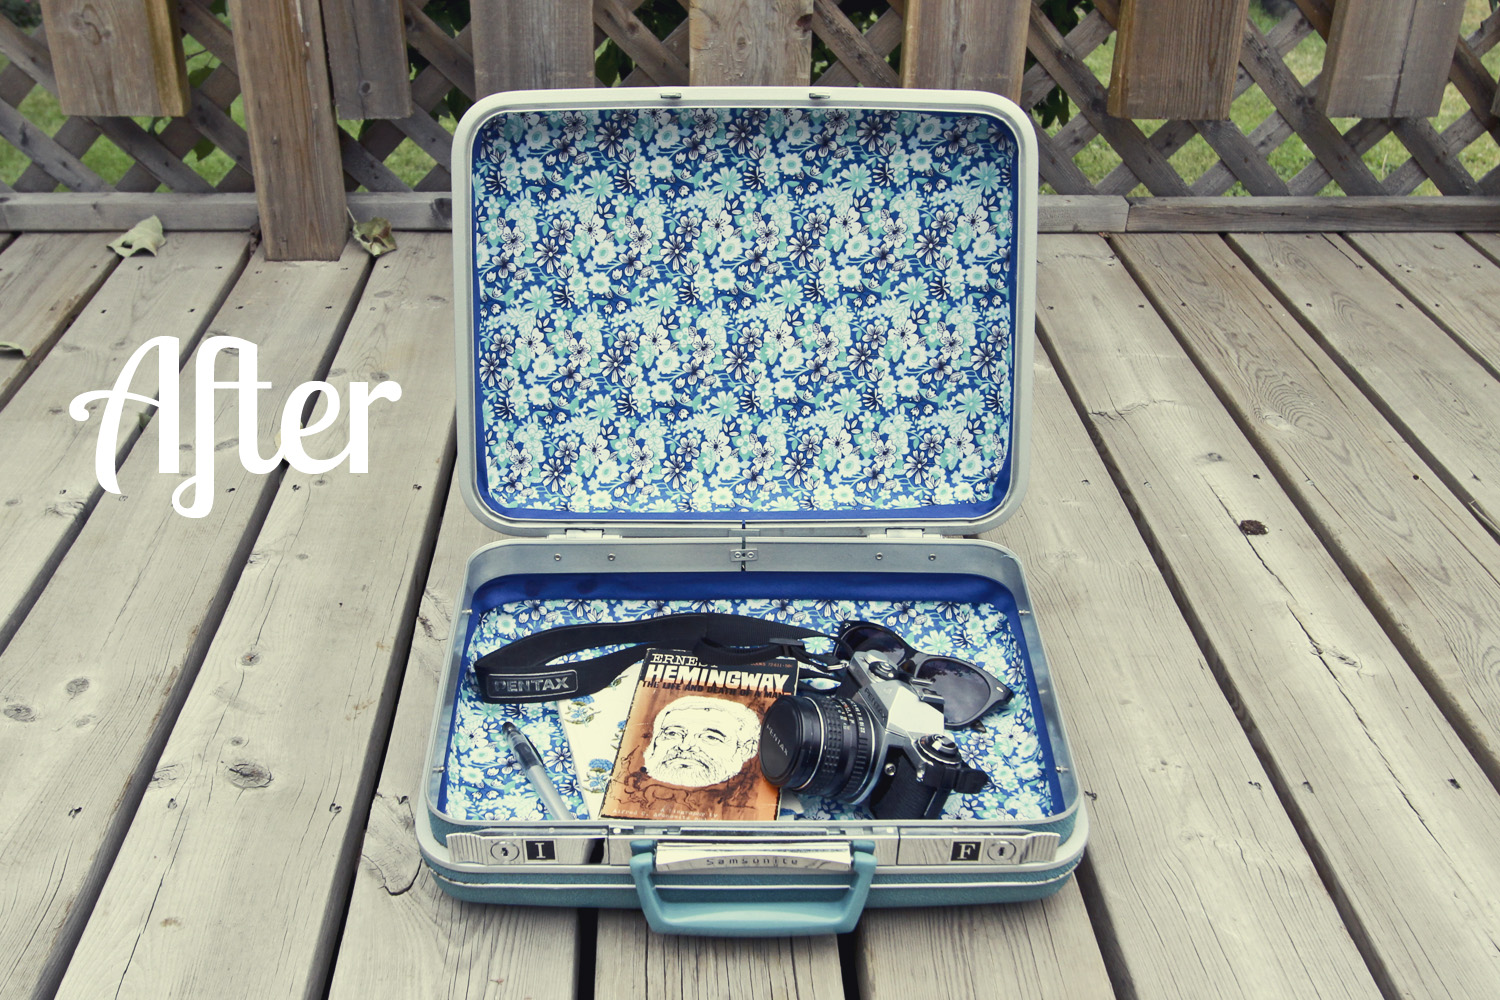 Thrifted// Vintage Samsonite Makeover// ©Allison Dragsten 2013